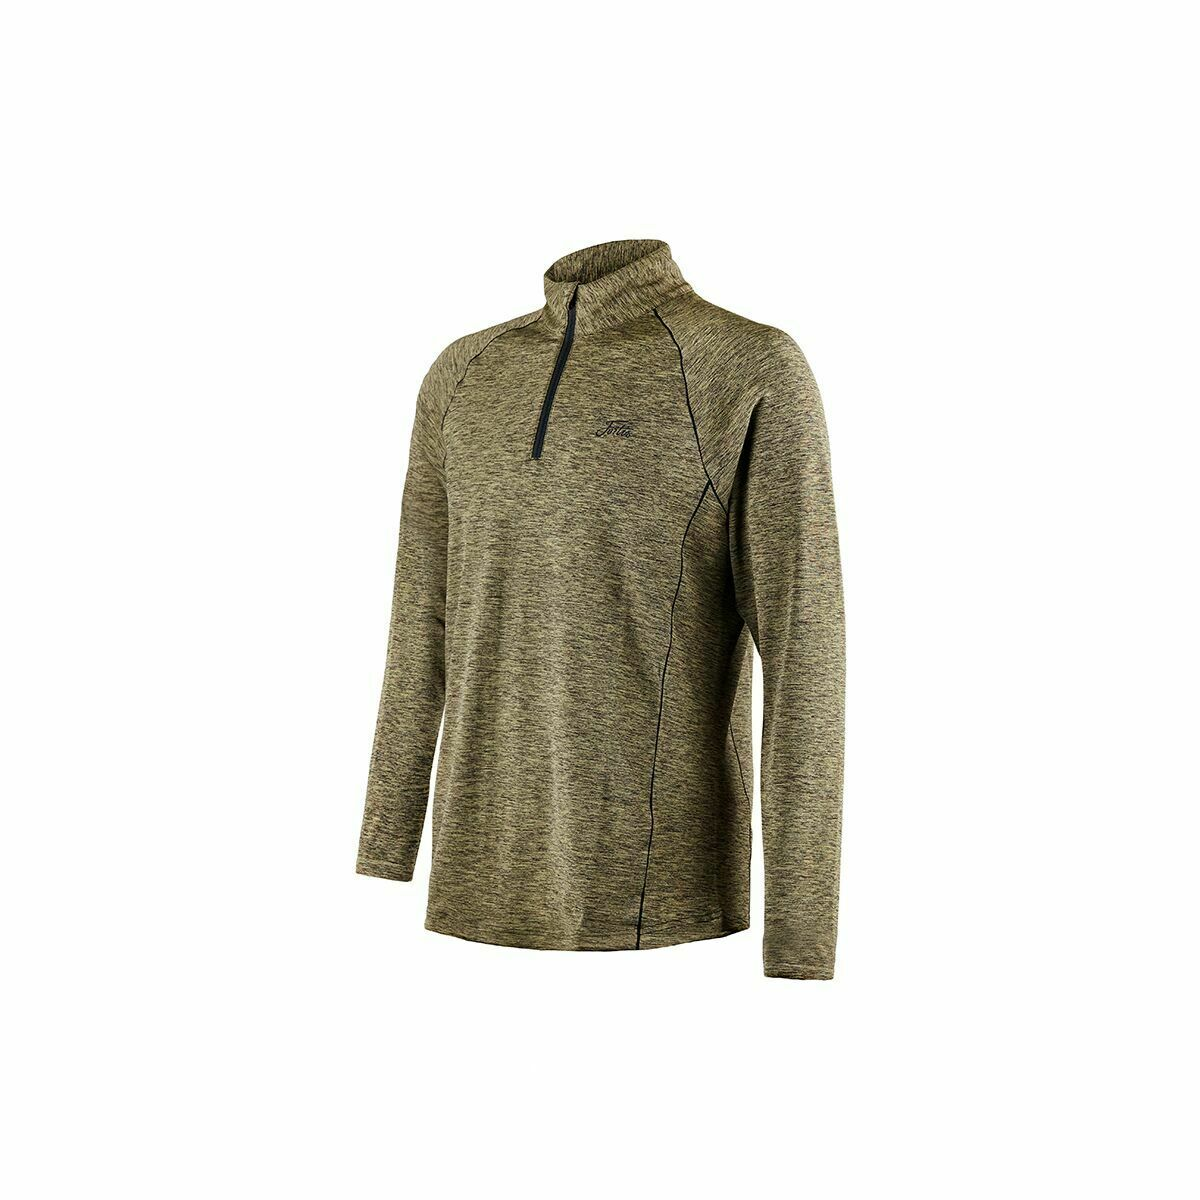 Fortis NEW EleSiets Top -All Größes- Carp Fishing Thermals   Baselayers